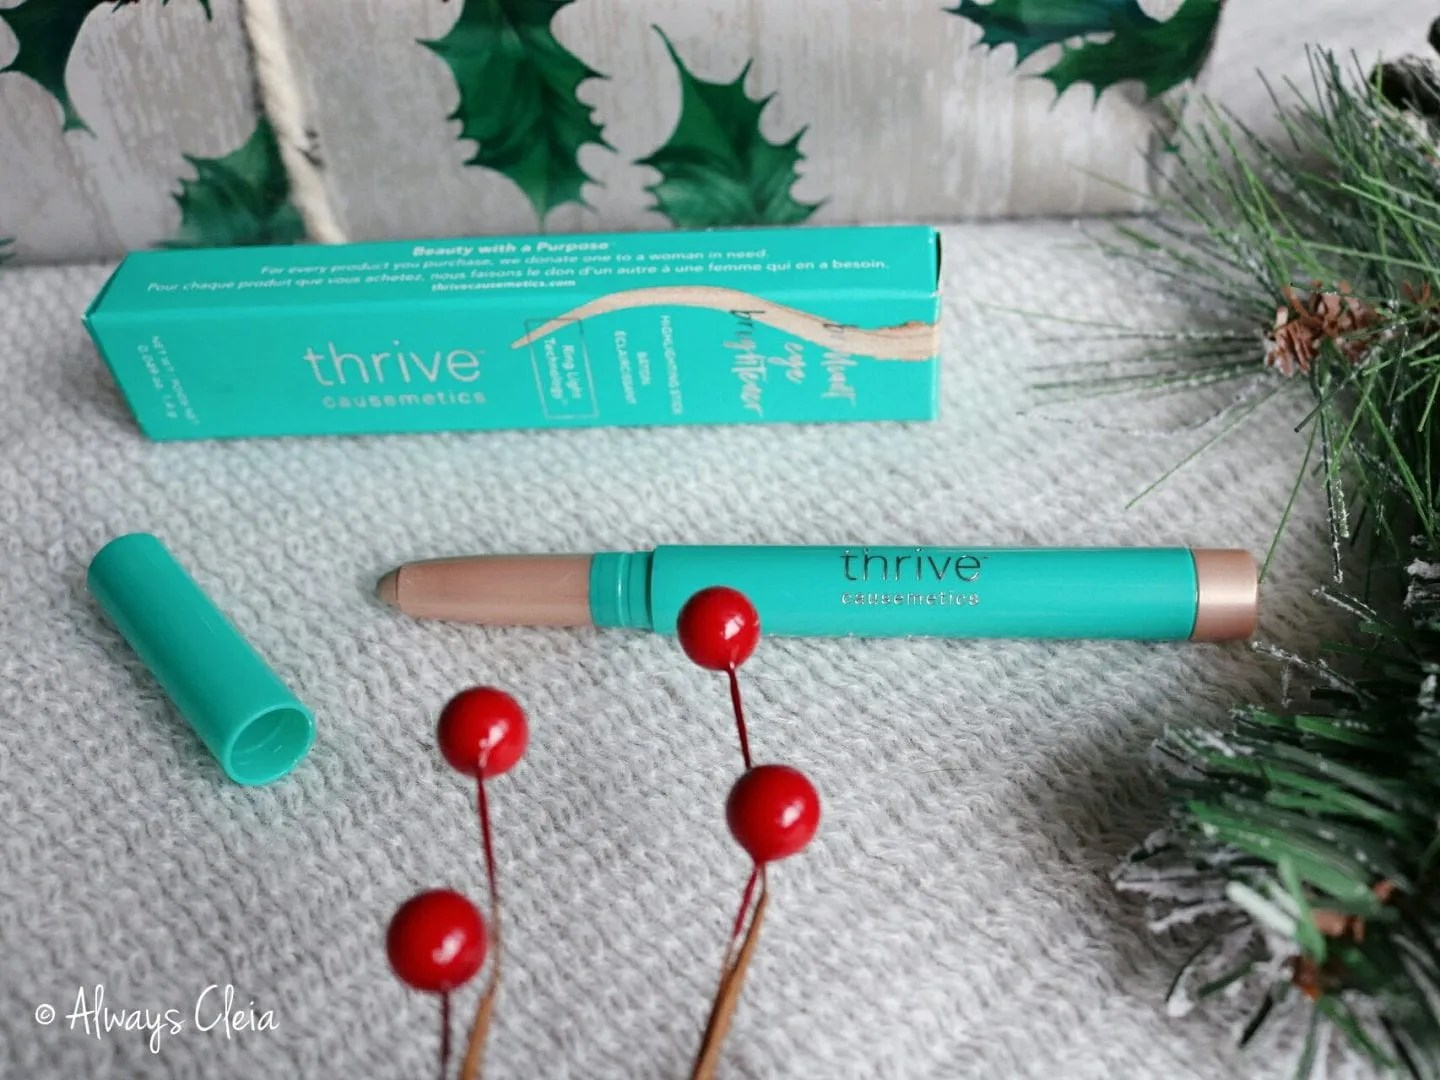 Thrive Causemetics Brilliant Eye Brightener Review - Packaging